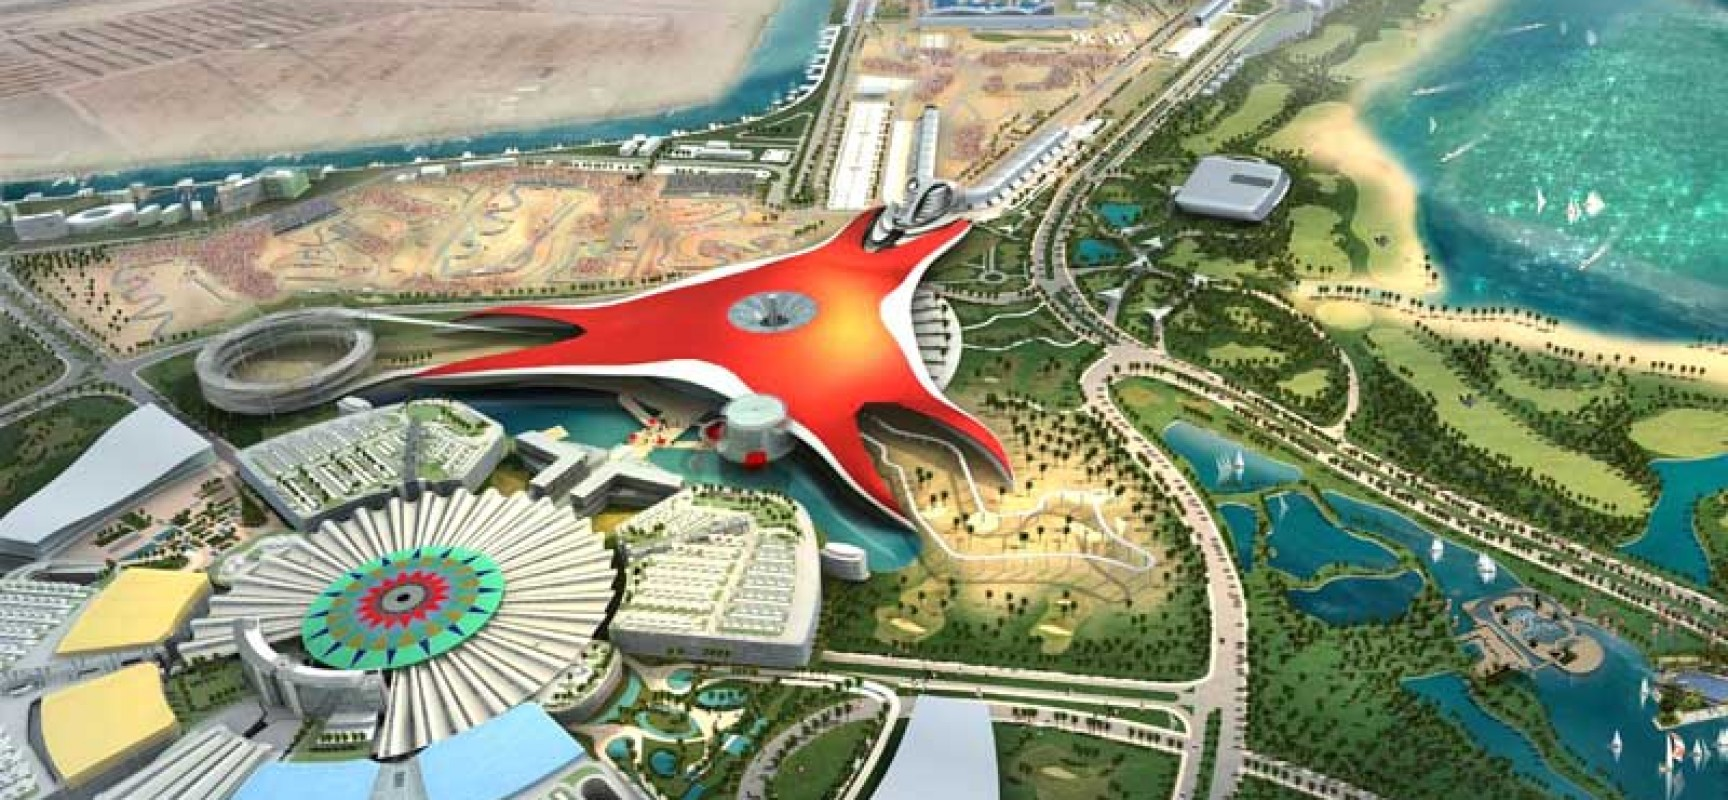 Ferrari World Map.Ferrari World The Biggest Indoor Theme Park Travel Featured